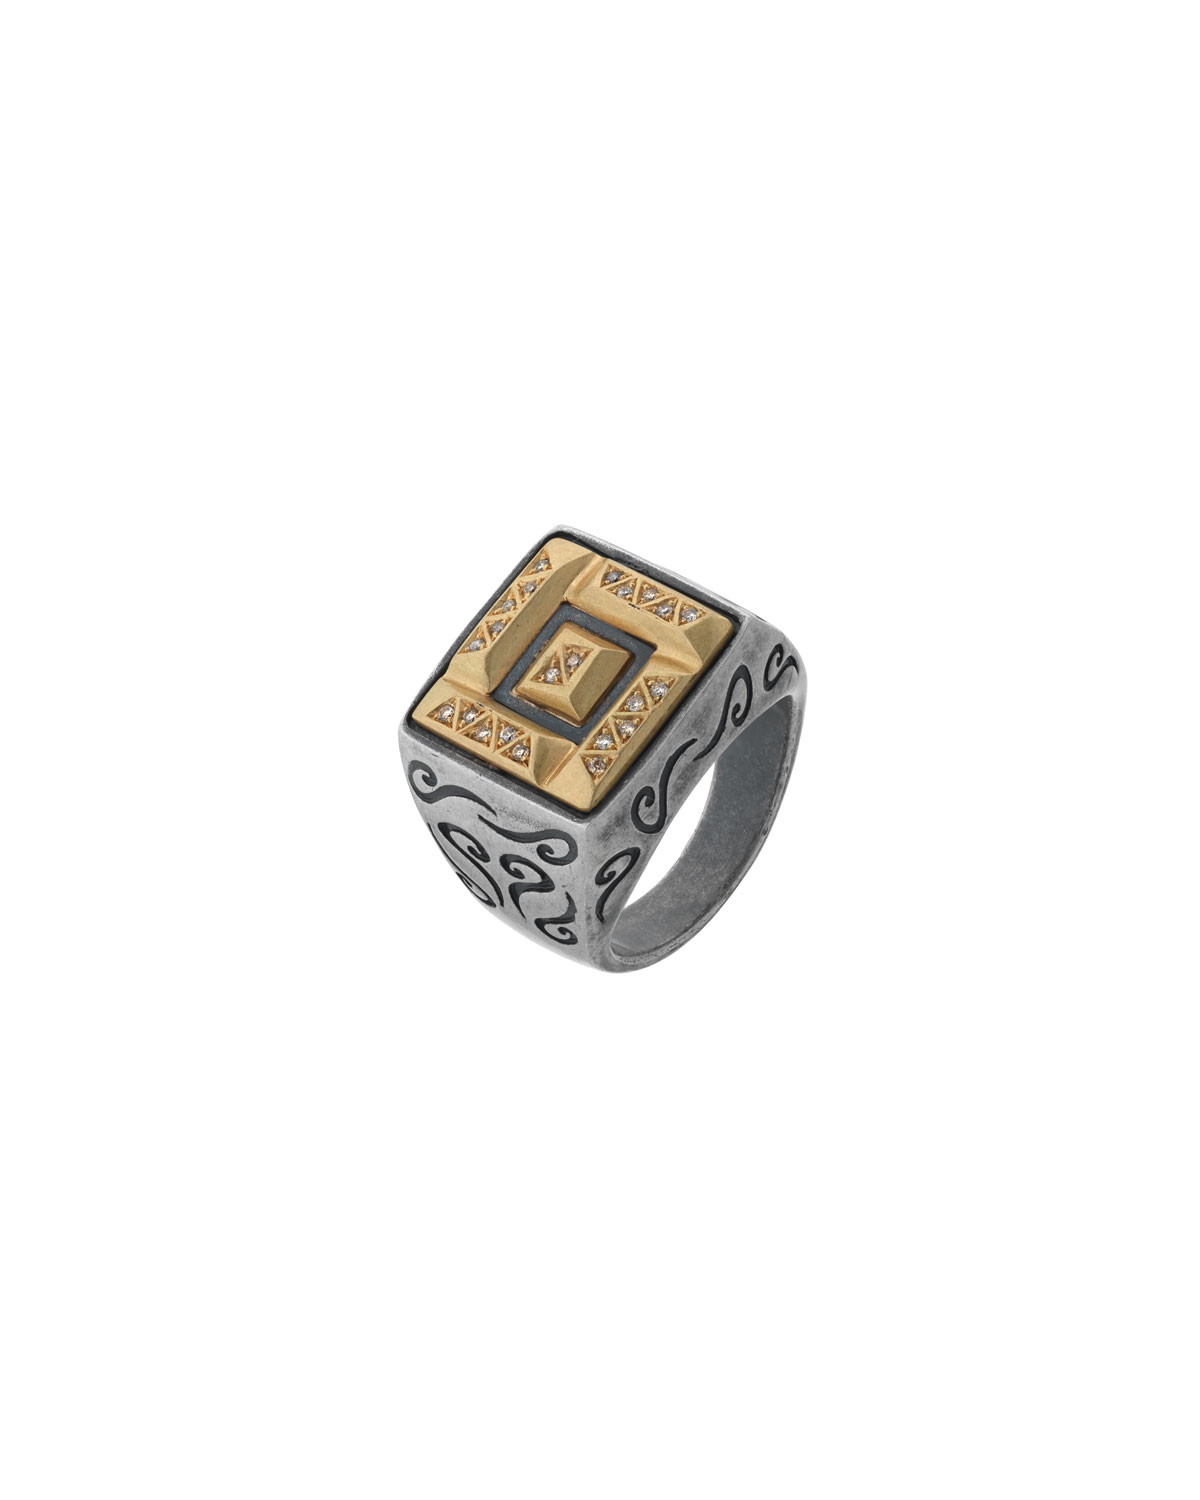 MARCO DAL MASO MEN'S ARA DOUBLE-RECTANGLE RING W/ DIAMONDS, SIZE 10